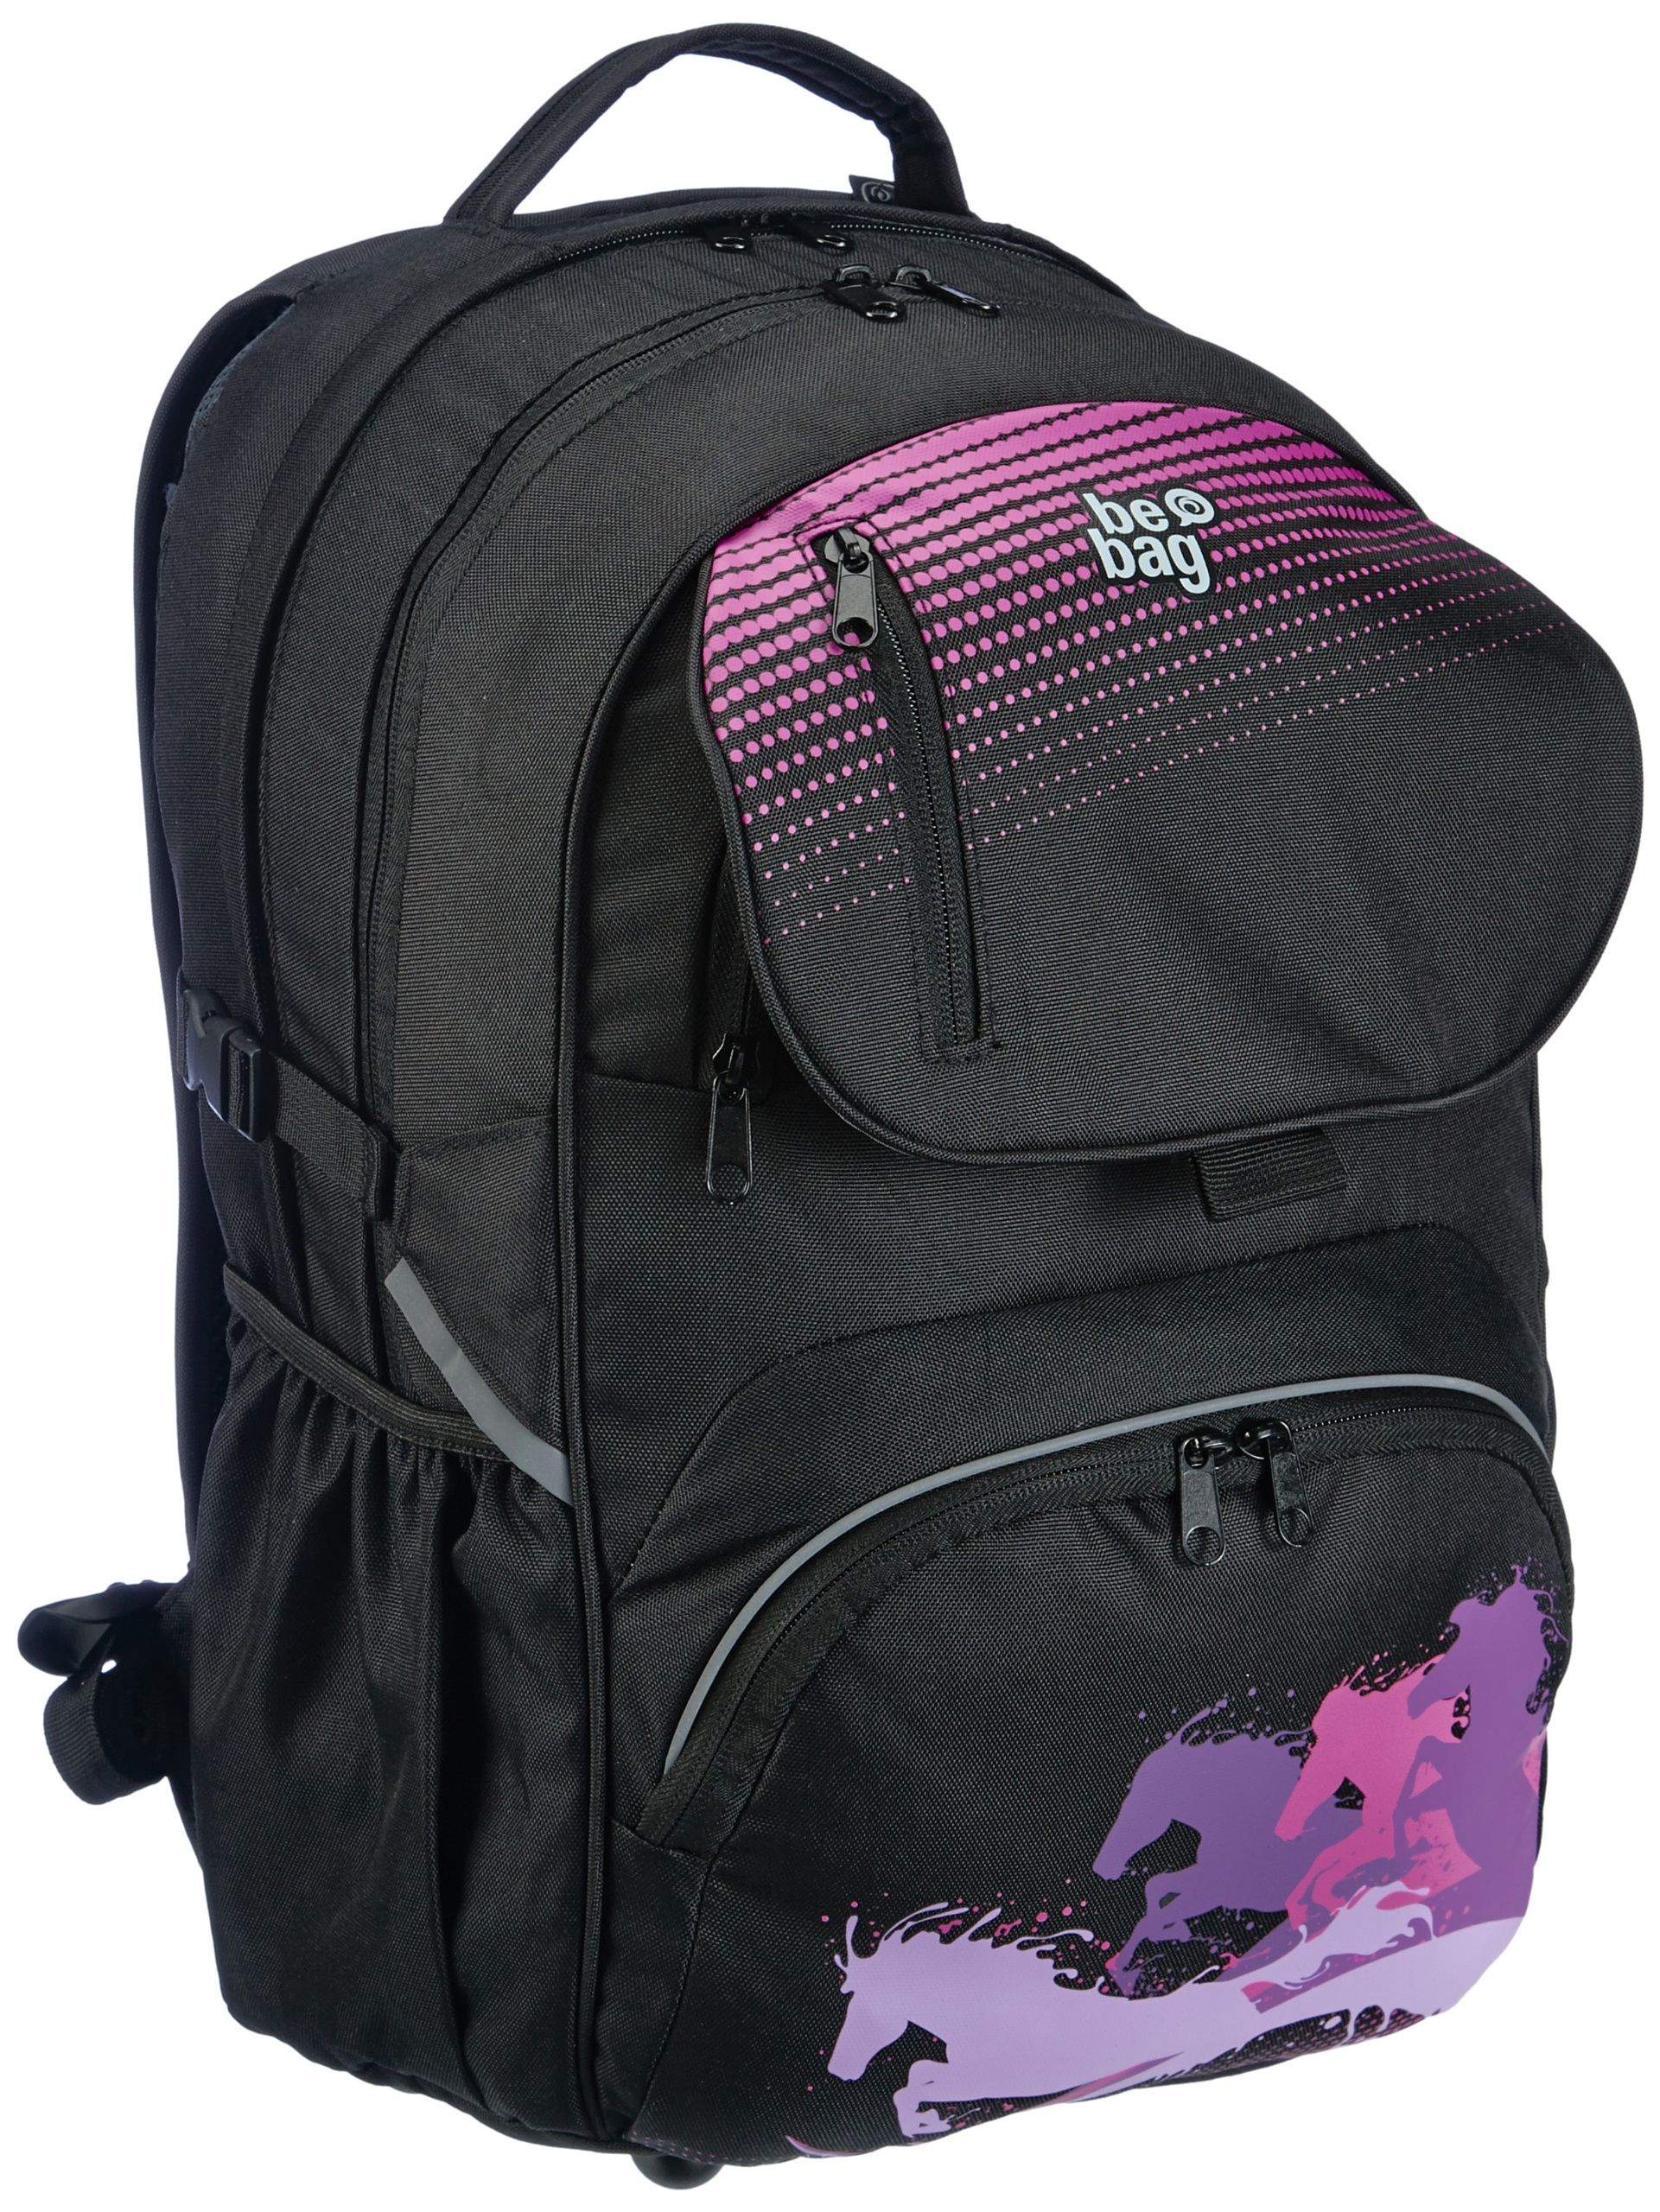 764d968208 Herlitz Horse Power Design Be Bag Cube School Backpack with Soft Case